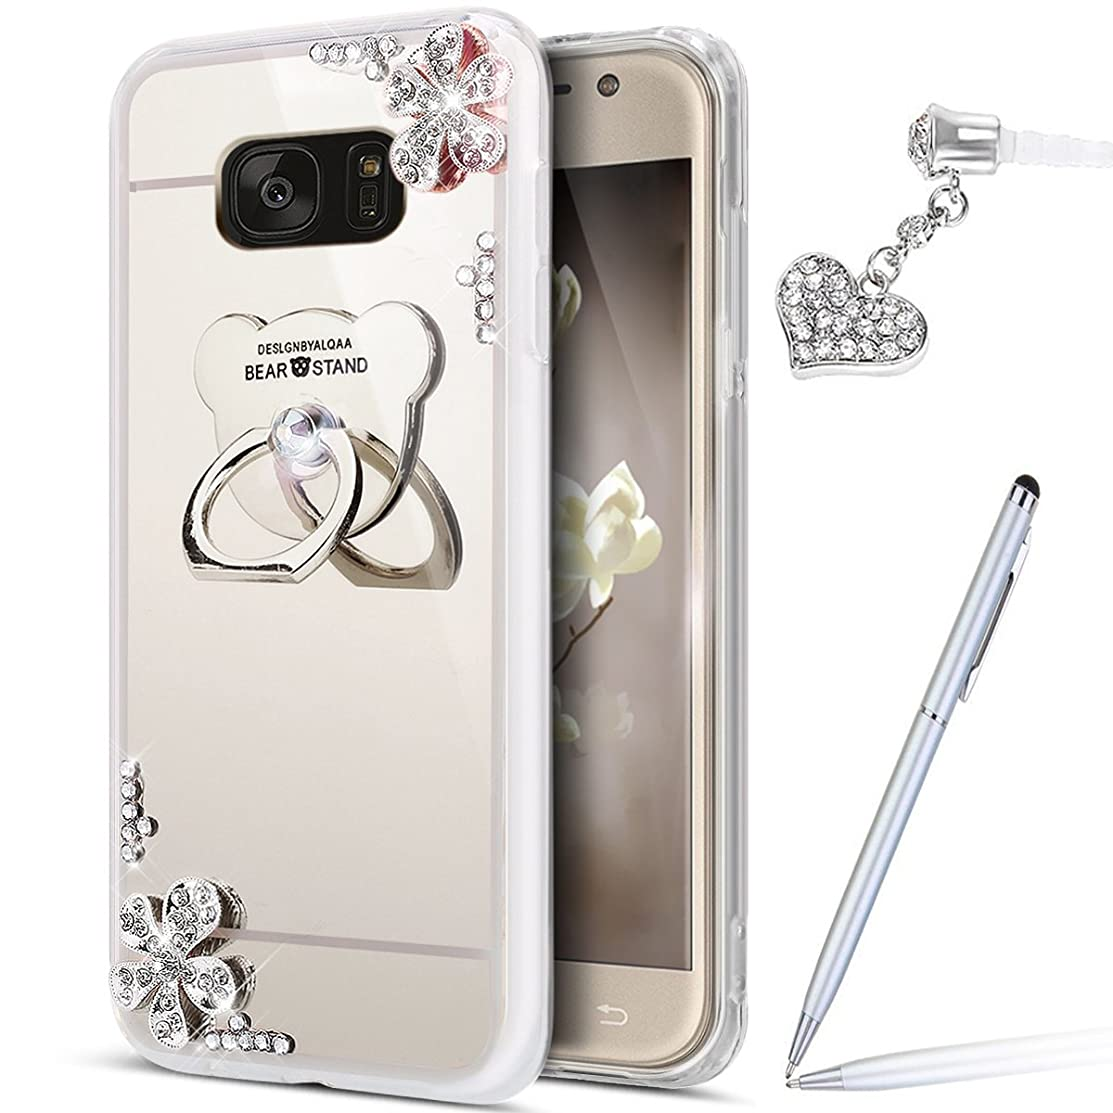 ikasus Galaxy S7 Case,Galaxy S7 Mirror Case, Inlaid Diamond Flowers Slim Rhinestone Diamond Glitter Bling Mirror Back TPU Case with Bear Ring Stand Holder +Touch Pen Dust Plug for Galaxy S7,Silver